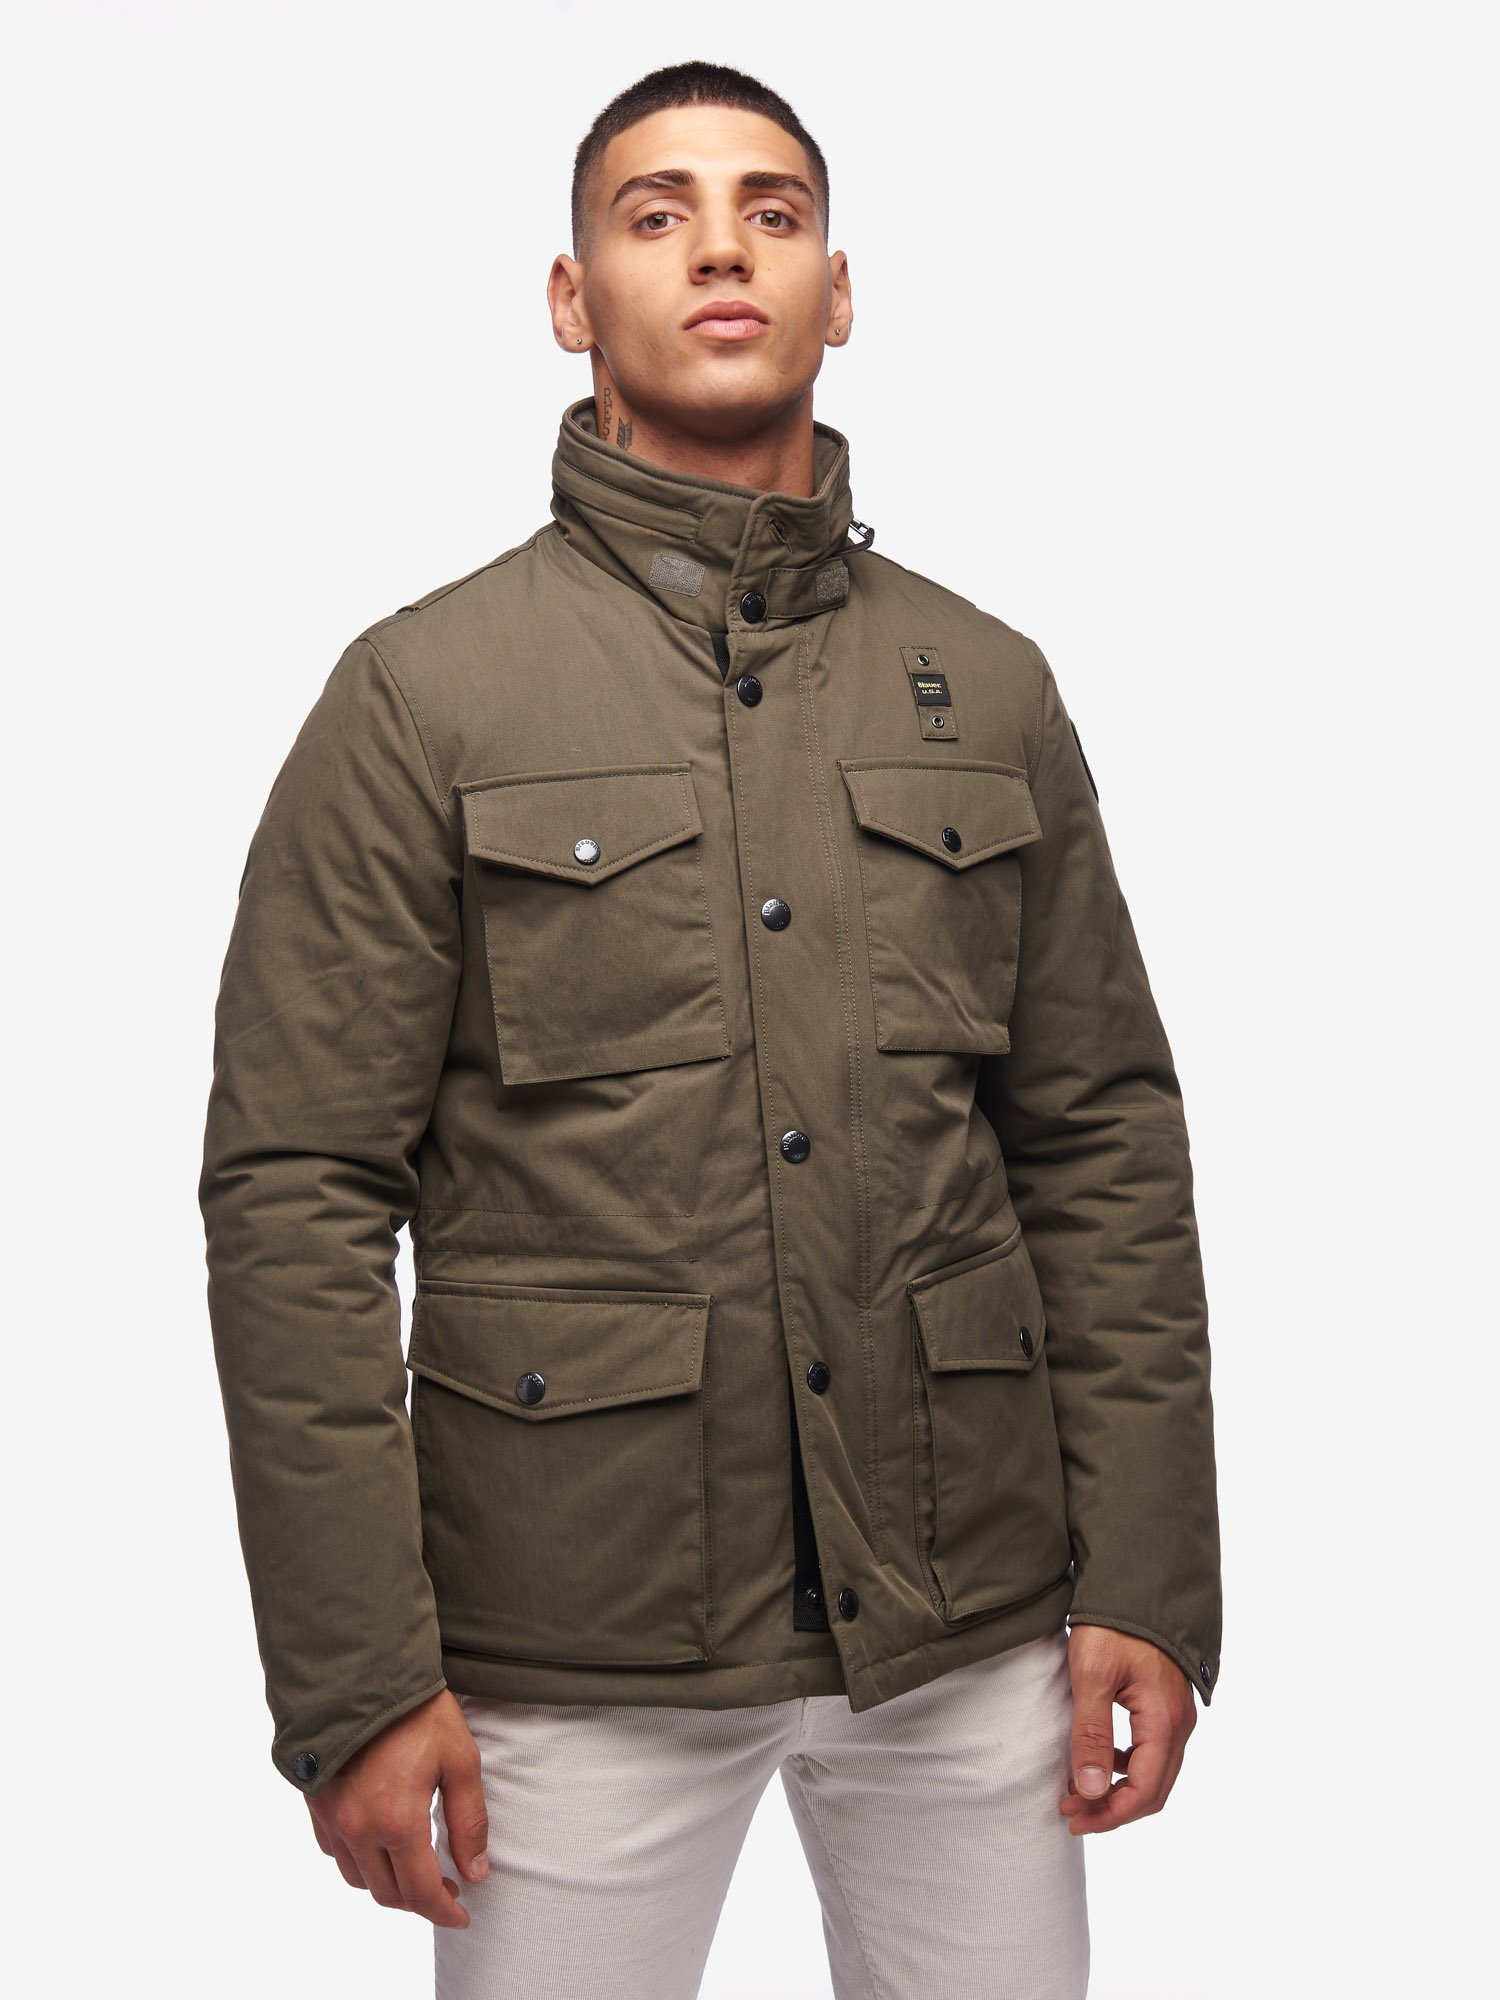 Blauer - GRAY MILITARY FIELD JACKET IN GABARDINE - Forest Green - Blauer